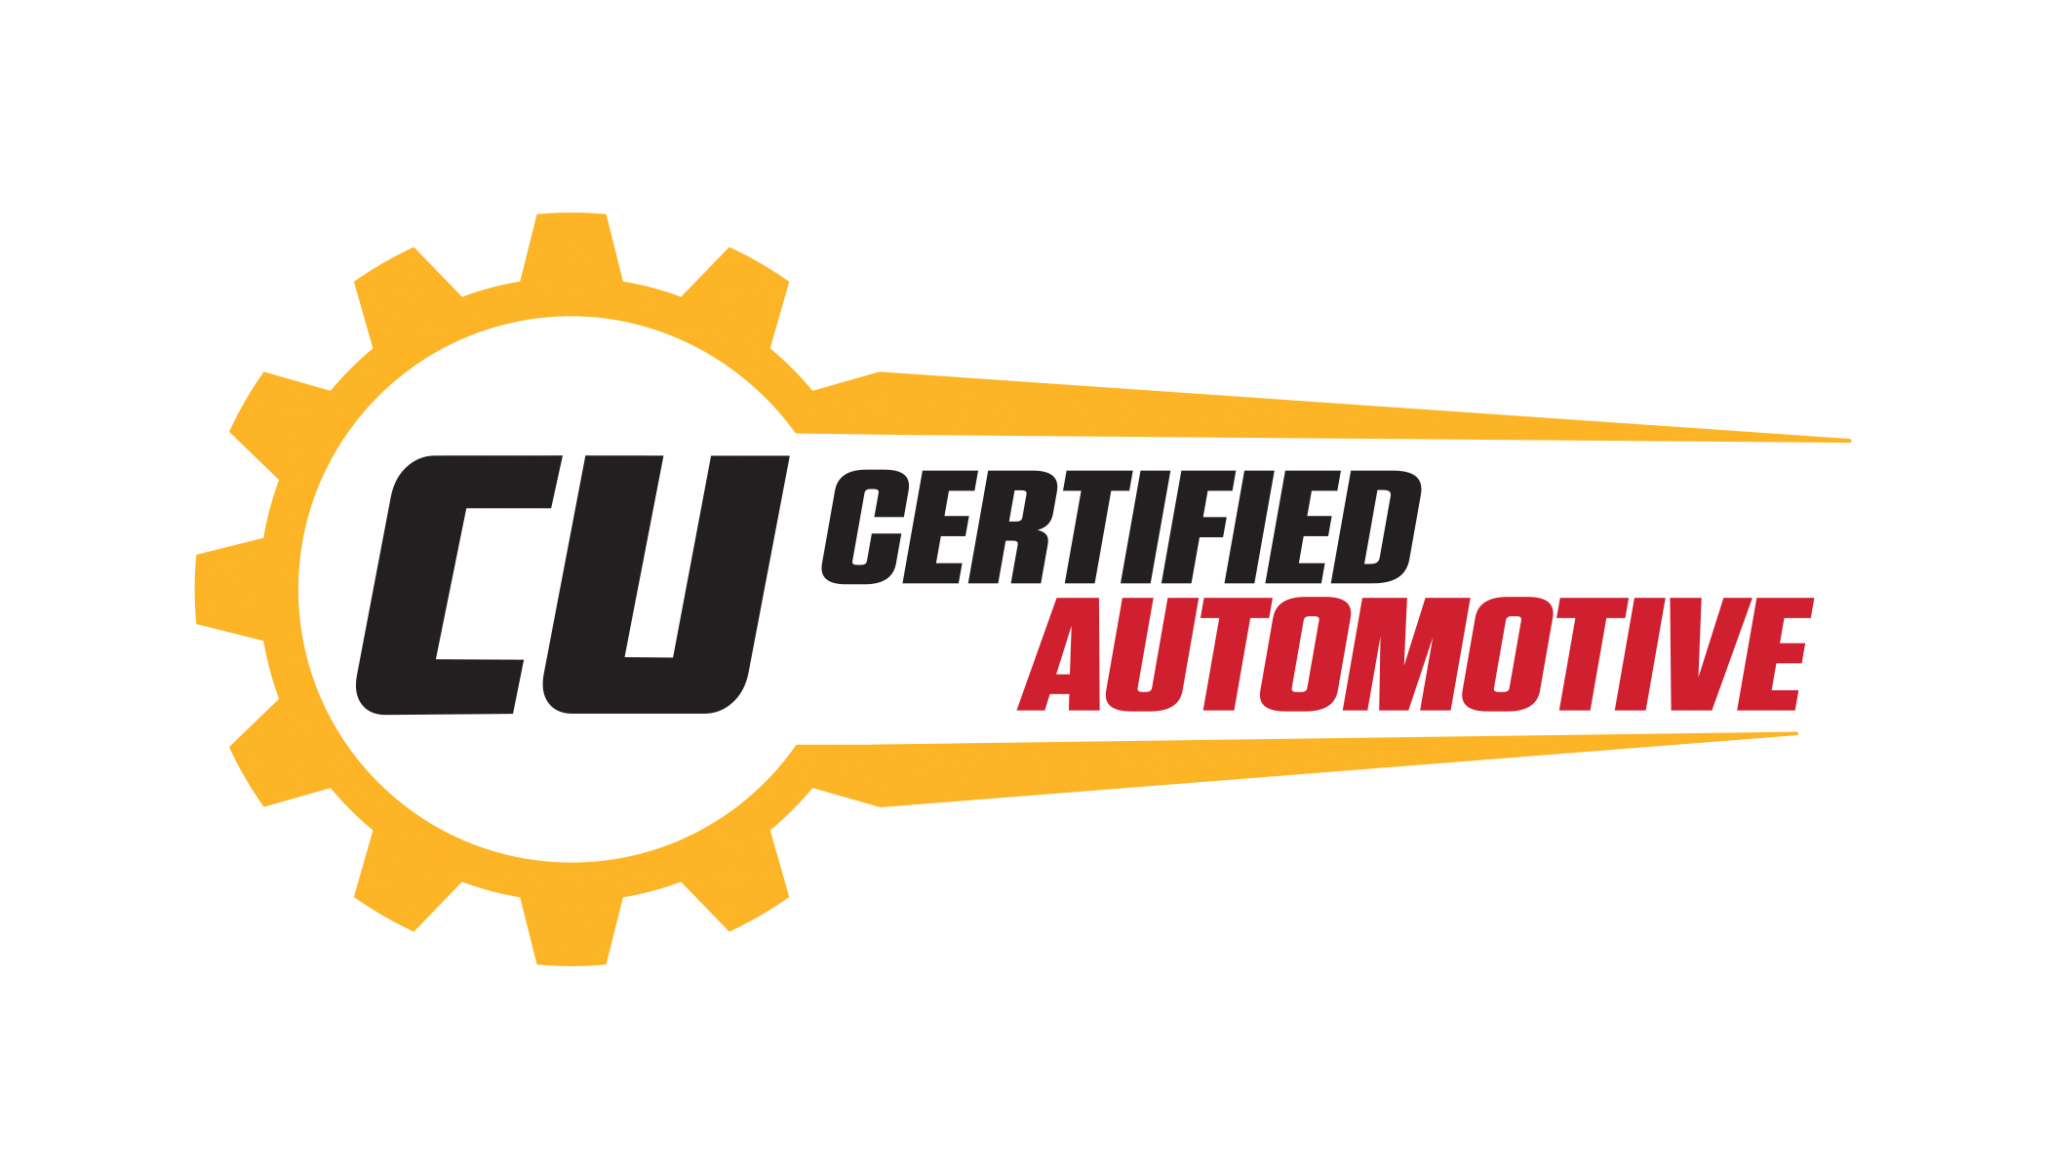 Logo Graphic for CU Certified Automotive Extended Service Agreement